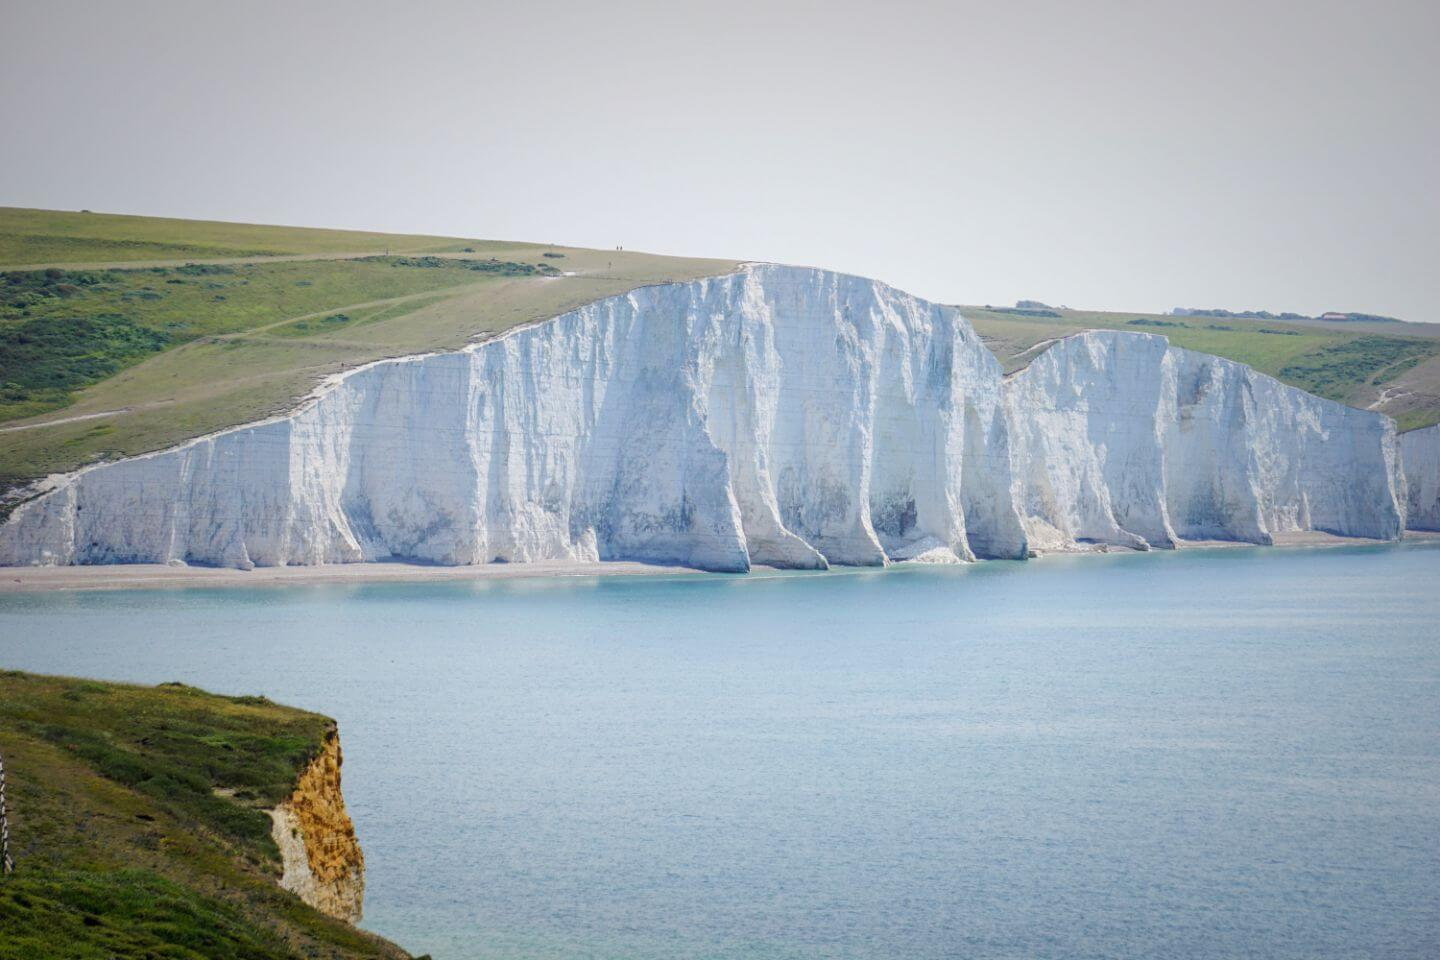 Seven Sisters Cliffs Walk - Seaford to Eastbourne Walk, England